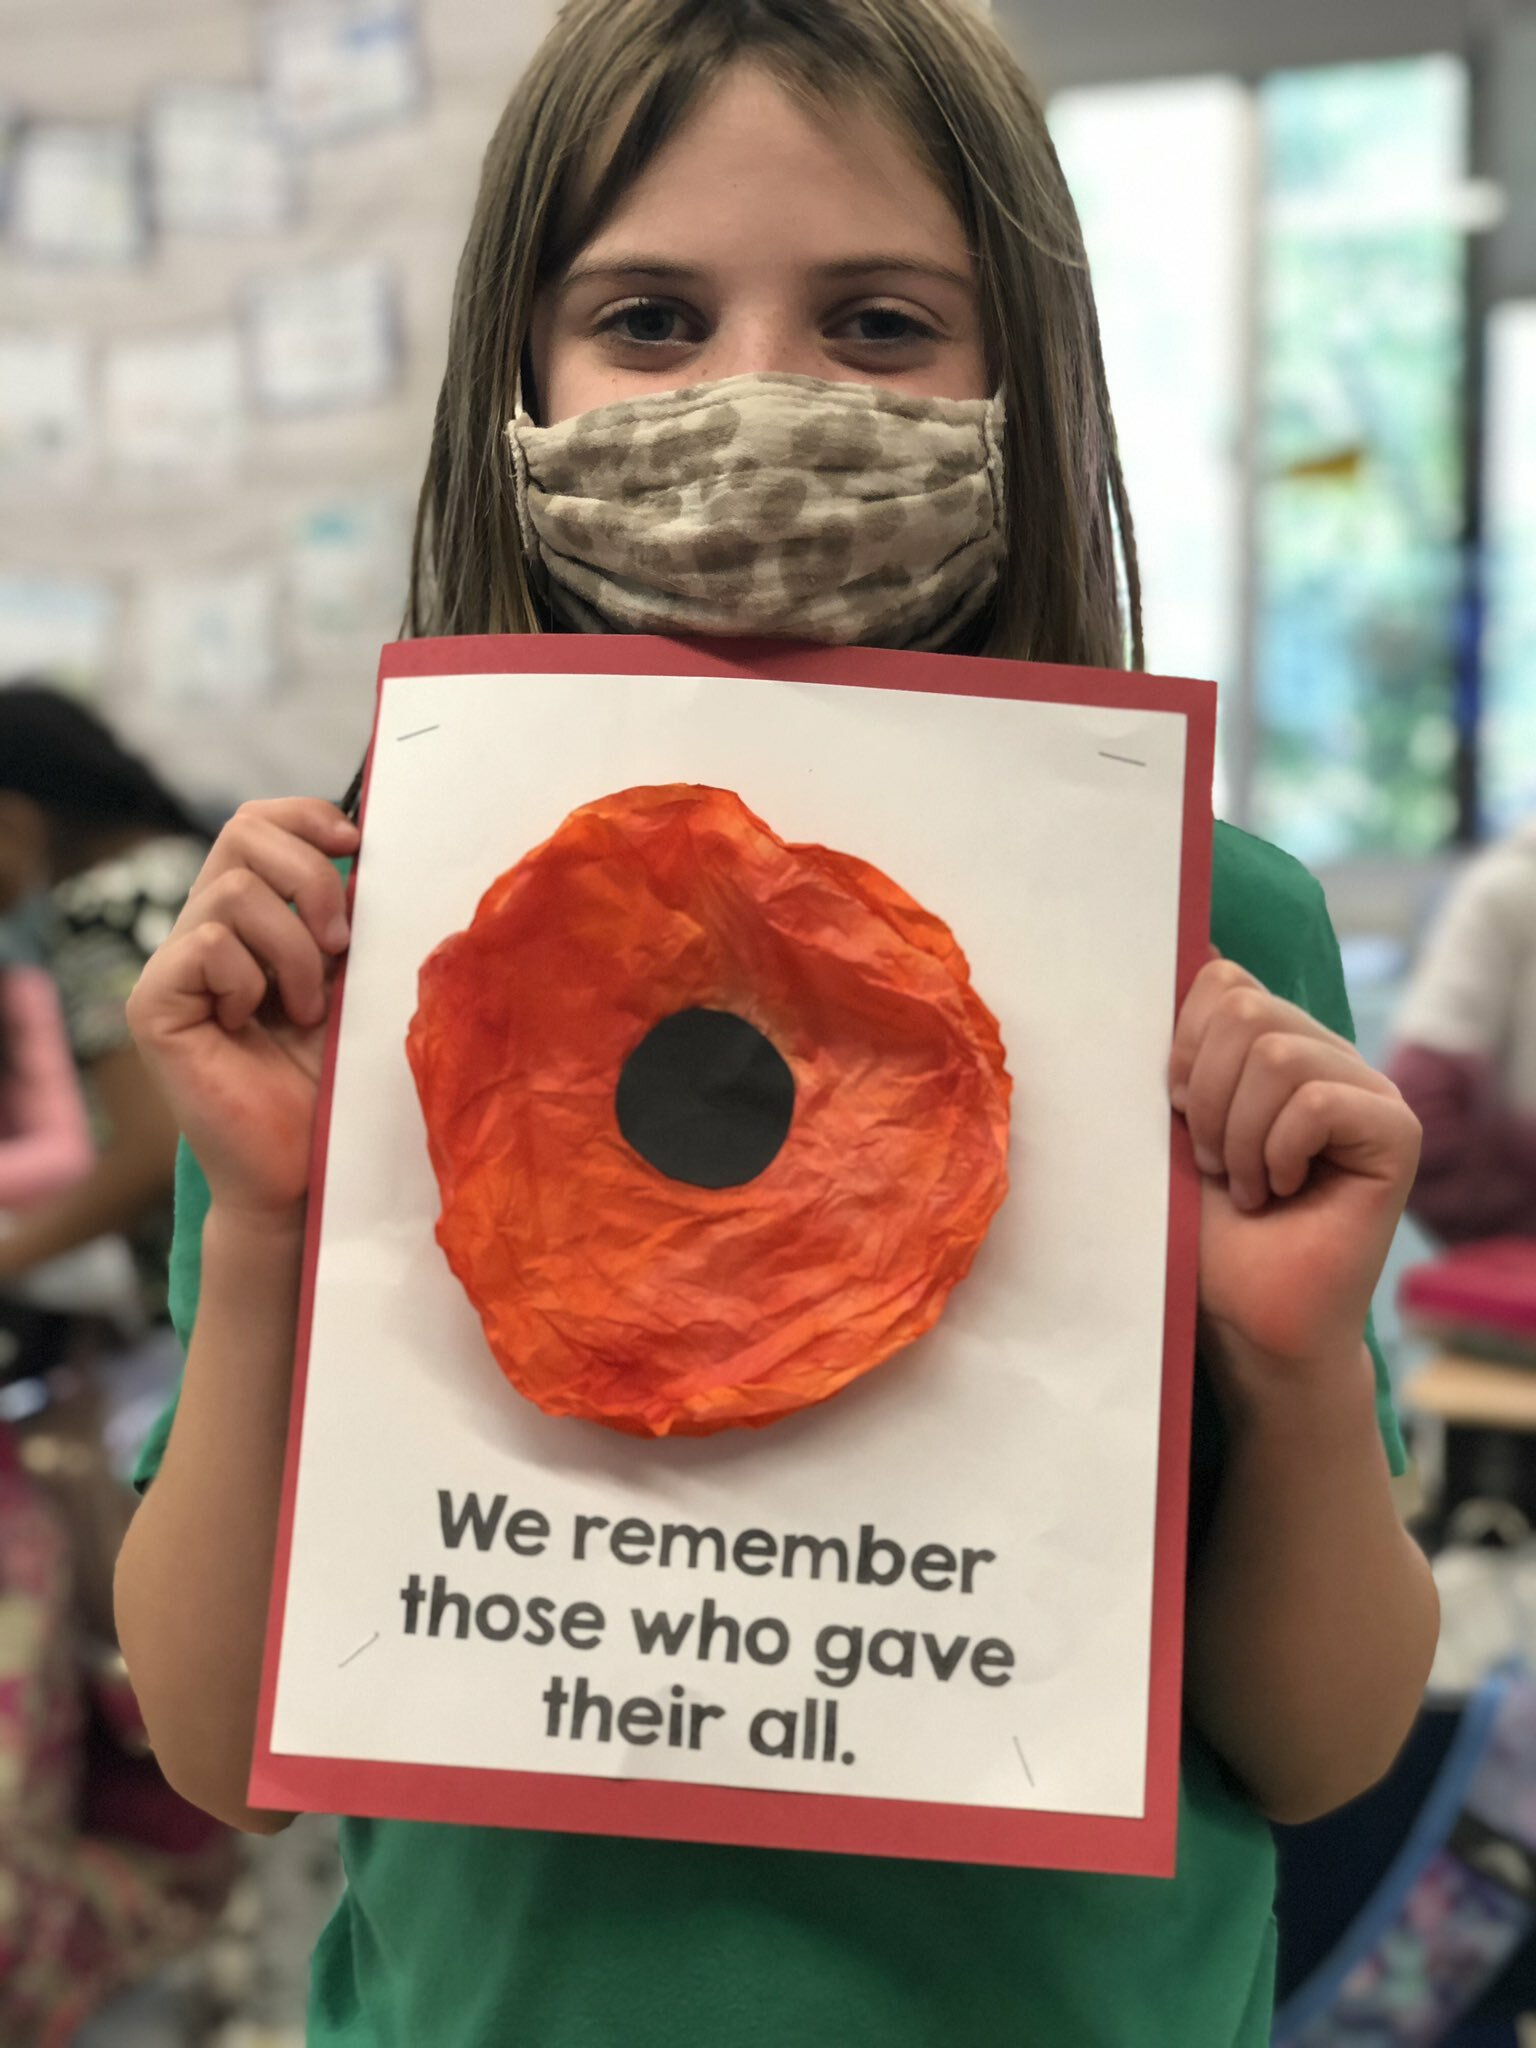 Hampton Bays Elementary School students recently learned more about Memorial Day and honoring those who served. In addition to the lessons, Erin McDermott's second grade class made red paper poppies, while Lauren Mikelinich's first graders designed red, white and blue paper plate wreaths. Photo courtesy of the Hampton Bays Union Free School District